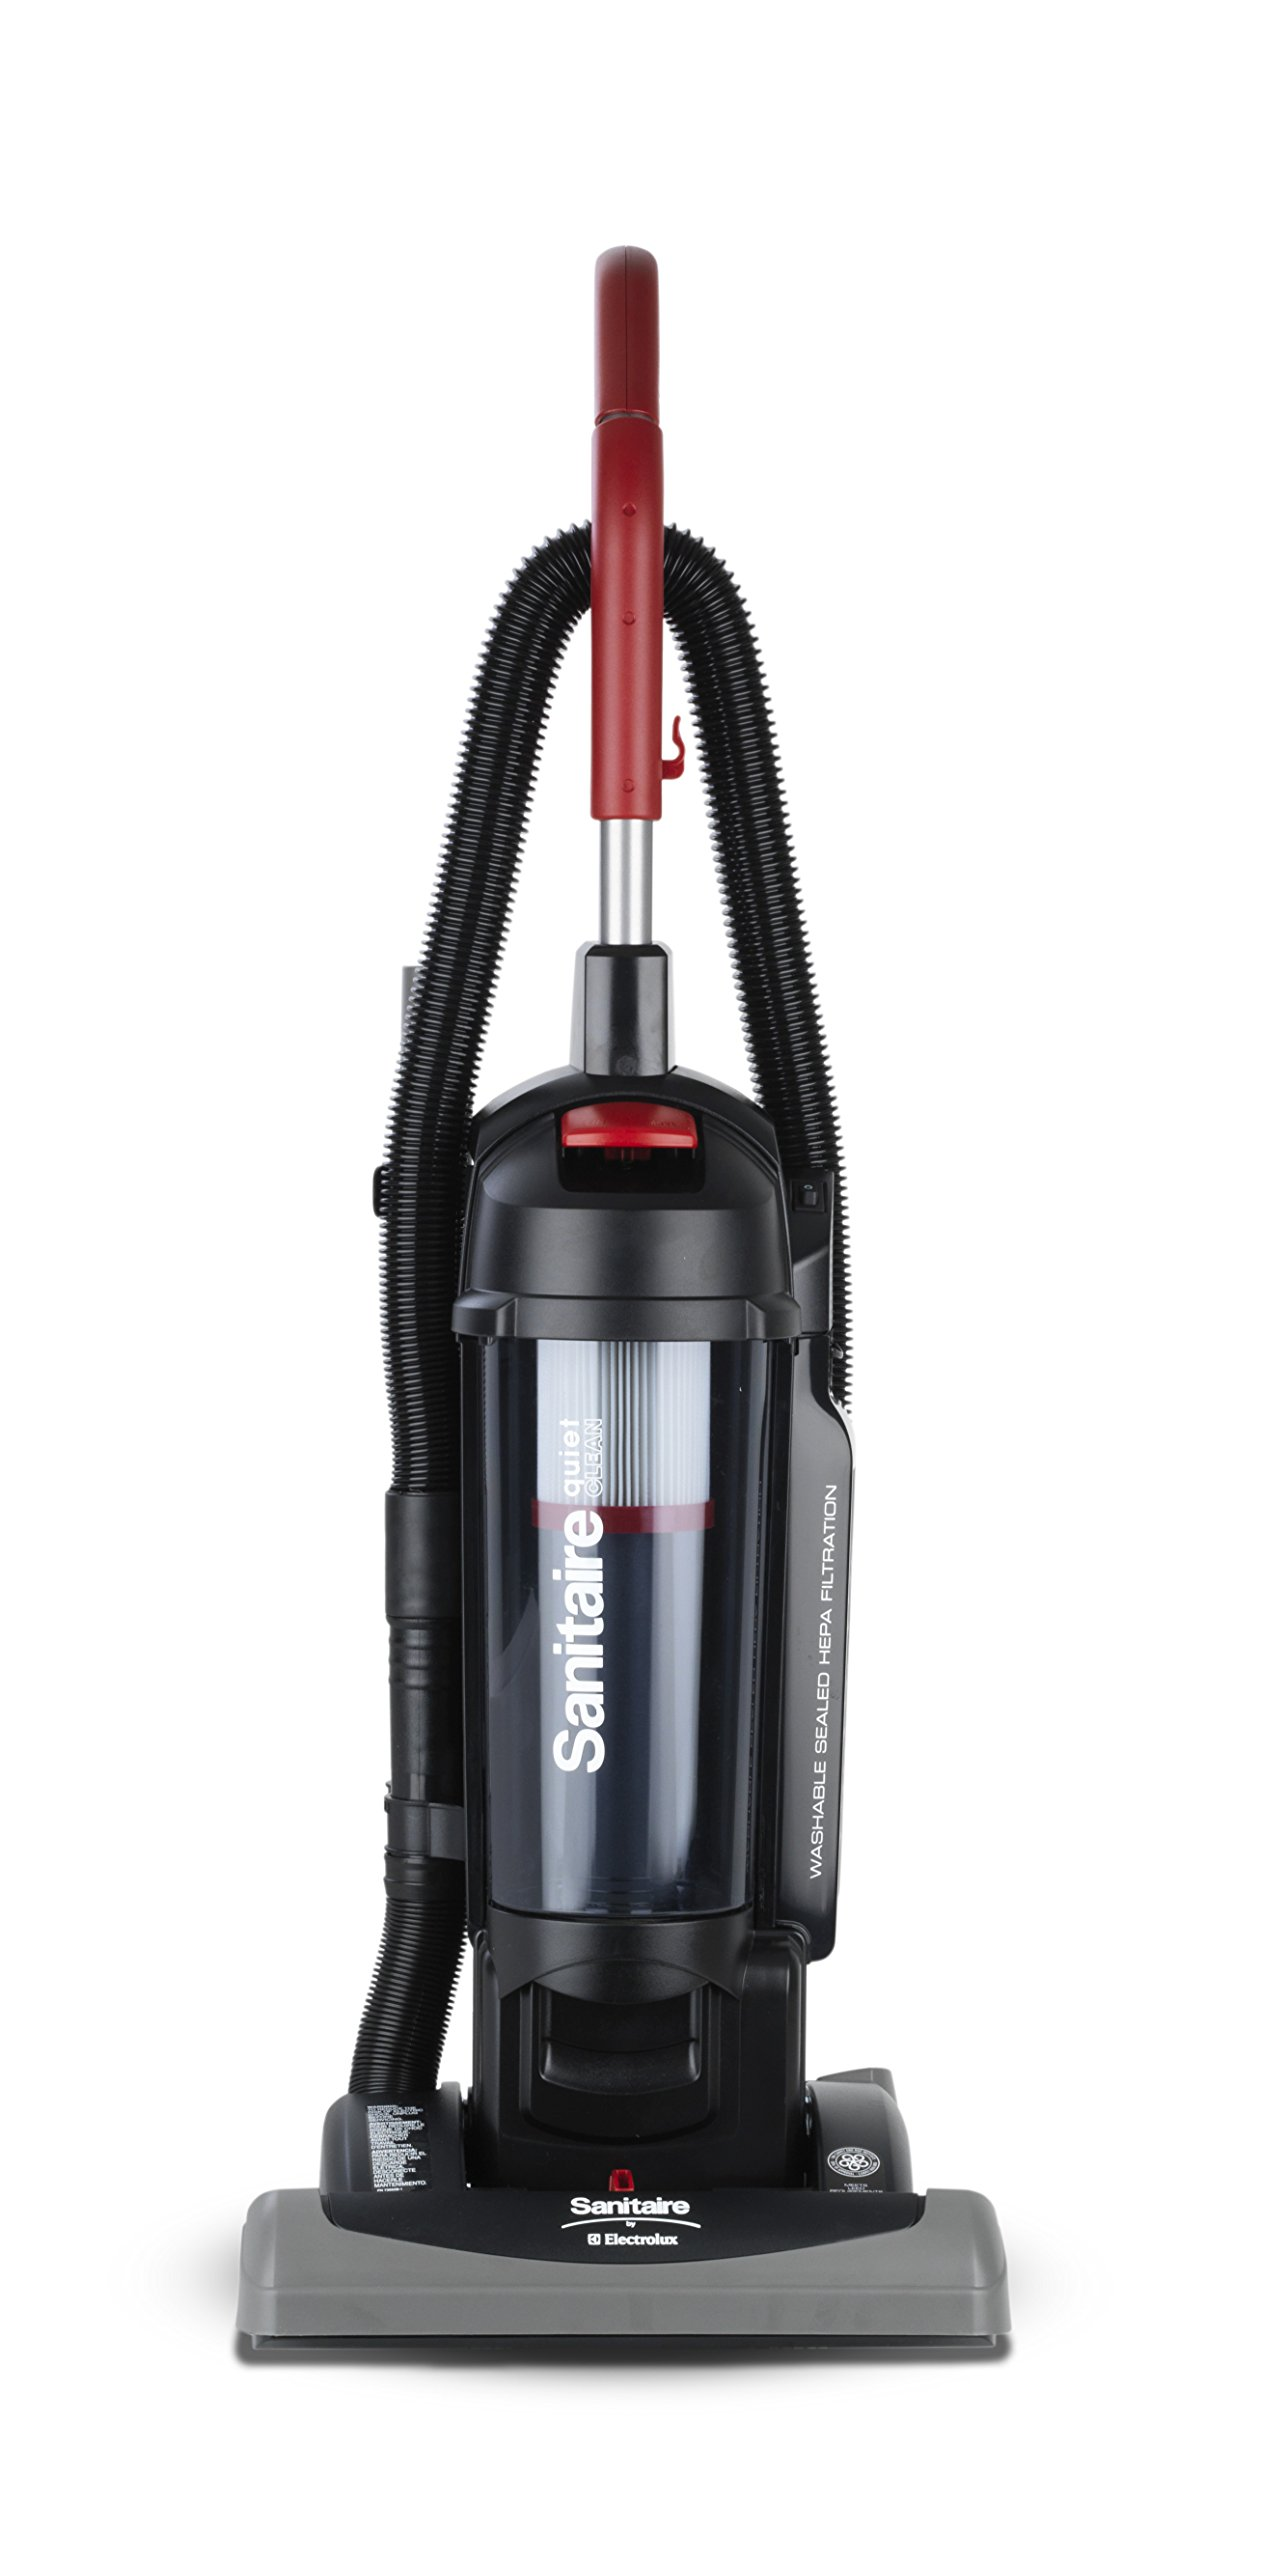 Sanitaire By Electrolux 15 Commercial Upright Vacuum